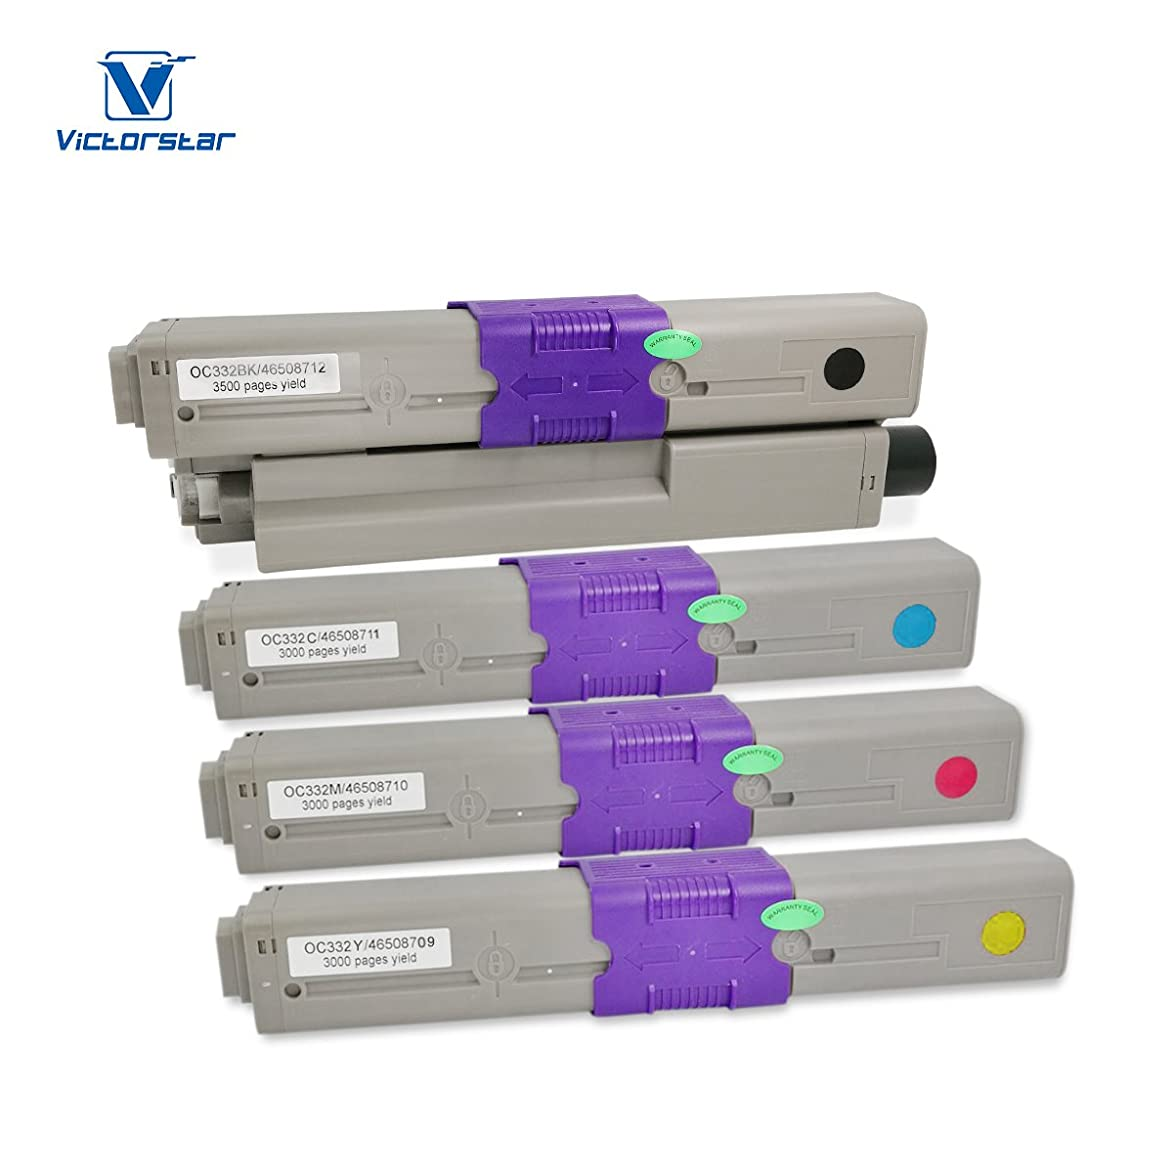 Compatible OKI Toner Cartridges C332 MC363 C332dn MC363dn C332dnw MC332dnw 4 Colors VICTORSTAR 3500 Pages for Black 3000 Pages for C M Y for OKI Okidata Color Laser Printers